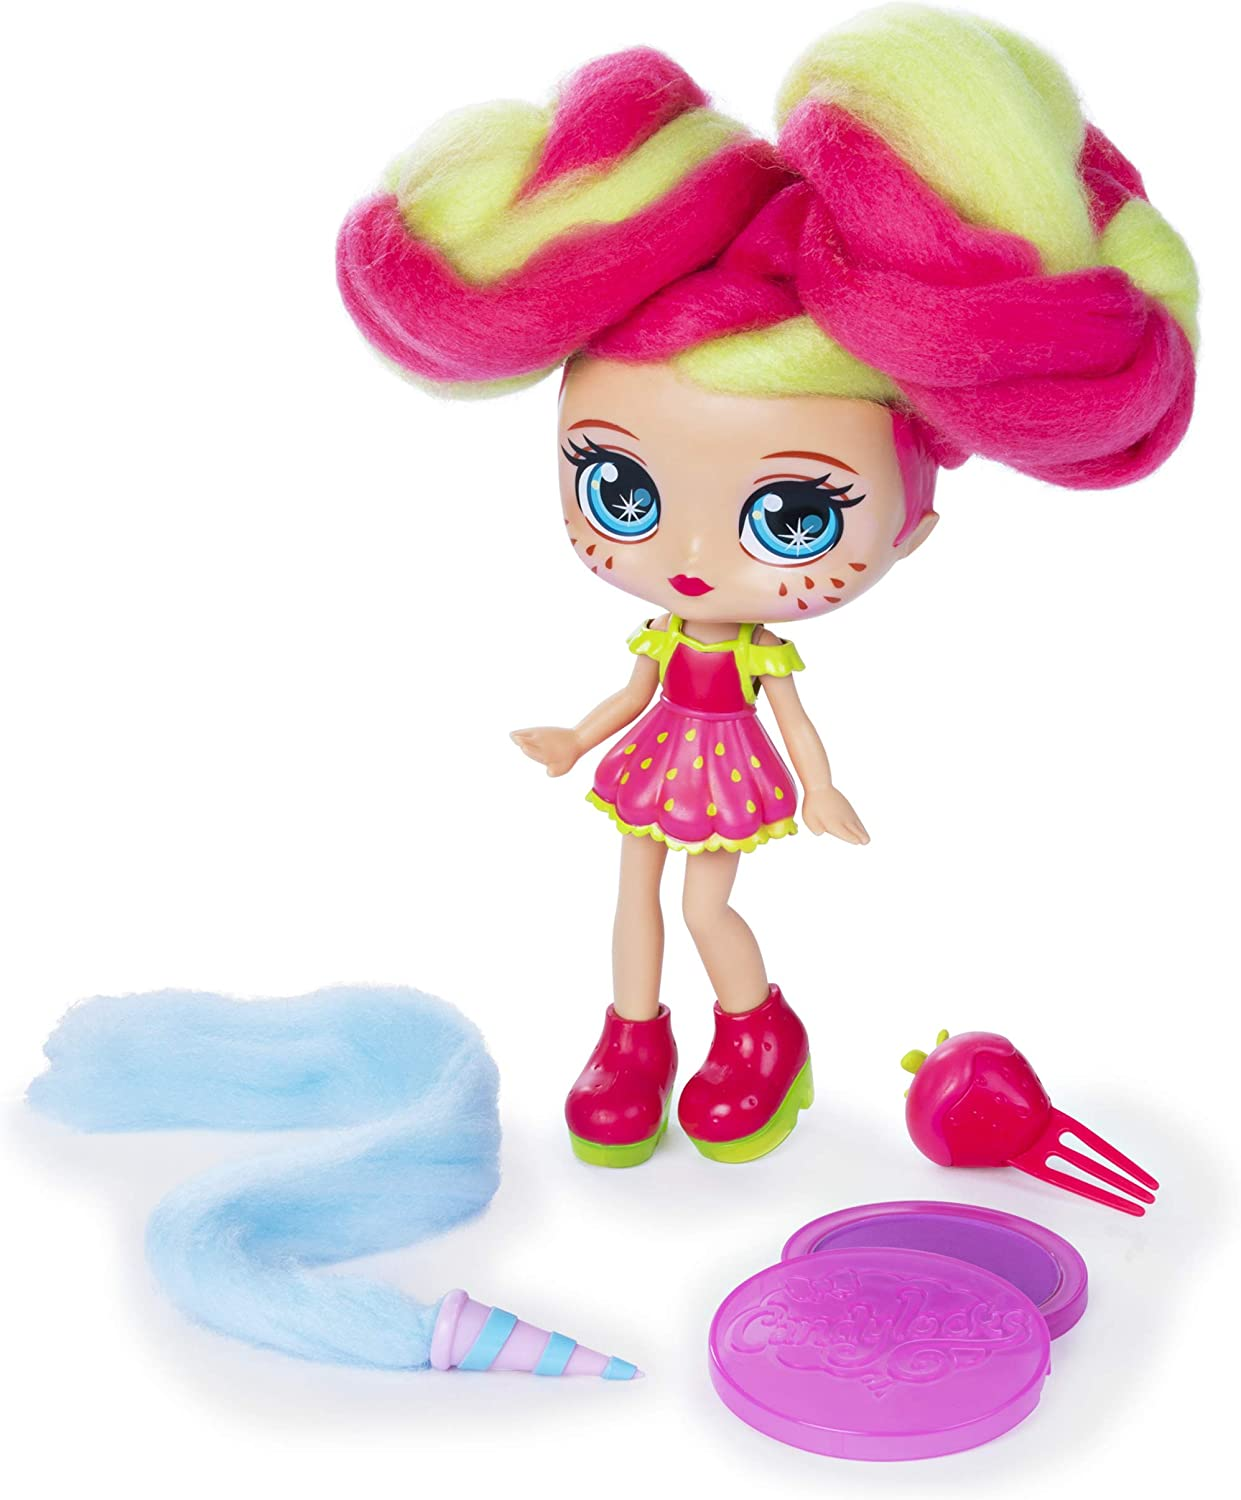 Candylocks 7-Inch Straw Mary, Sugar Style Deluxe Scented Collectible Doll with Accessories